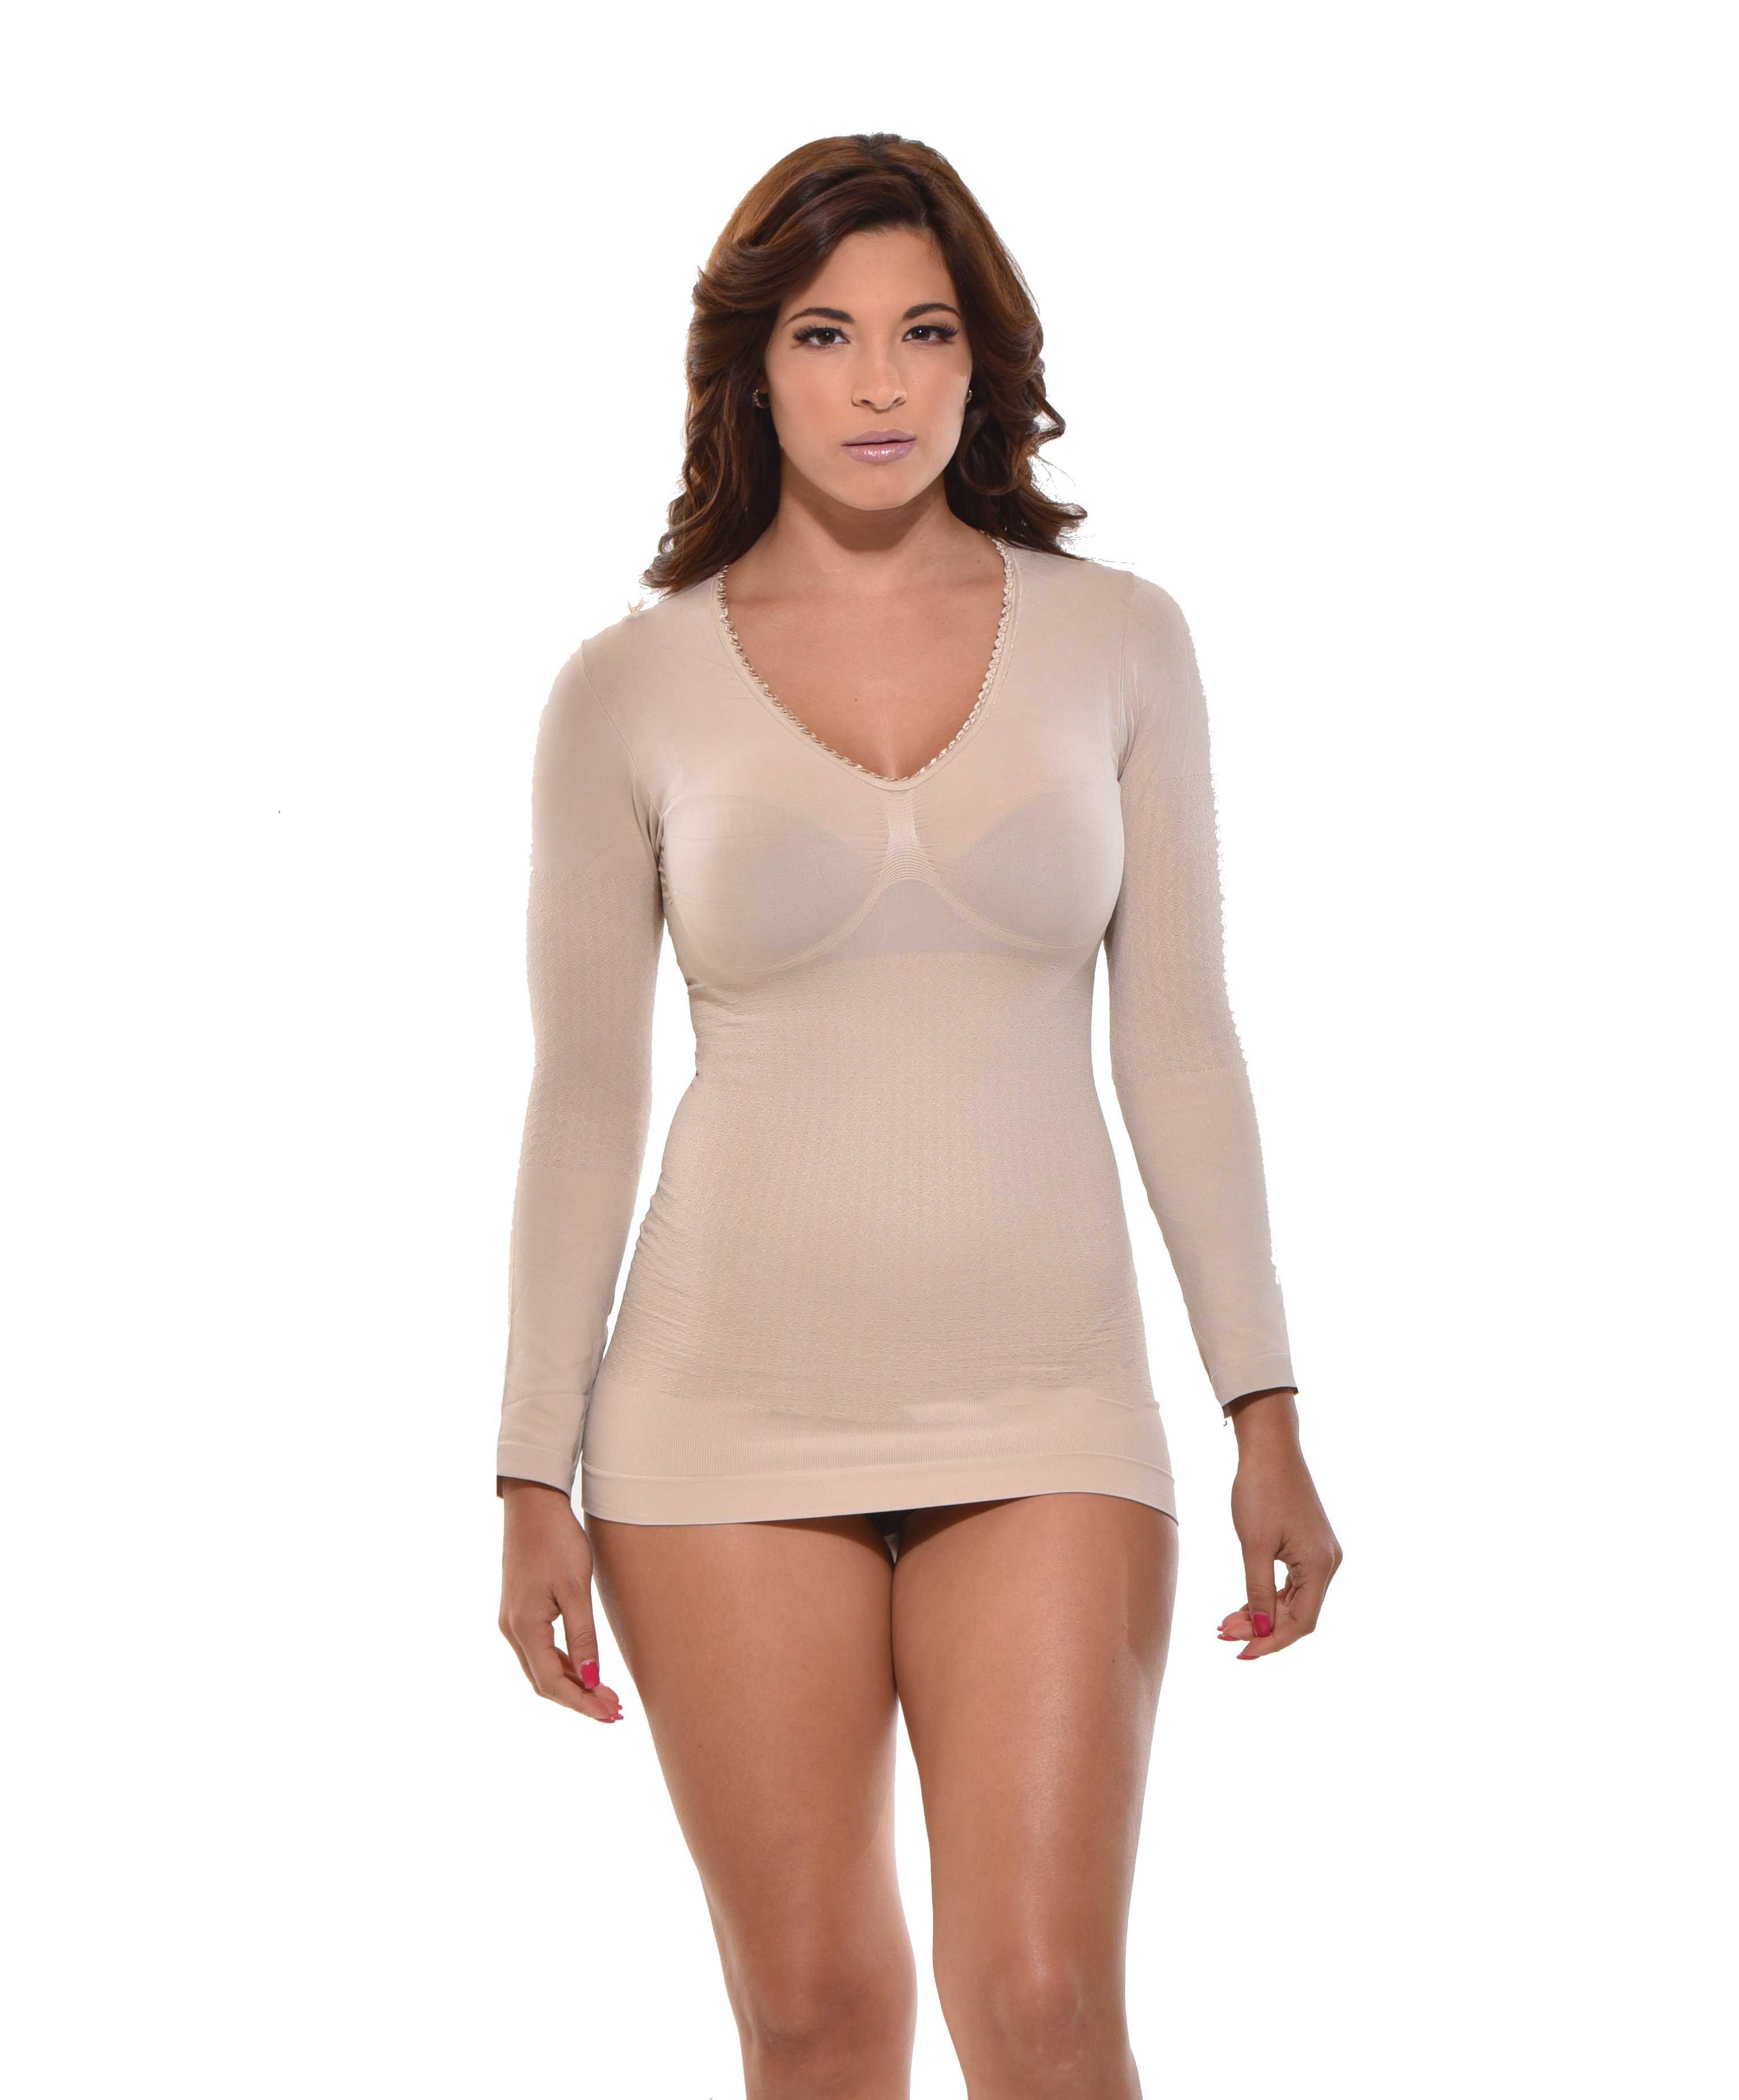 Shaping Camisole YC-9025-N nude front